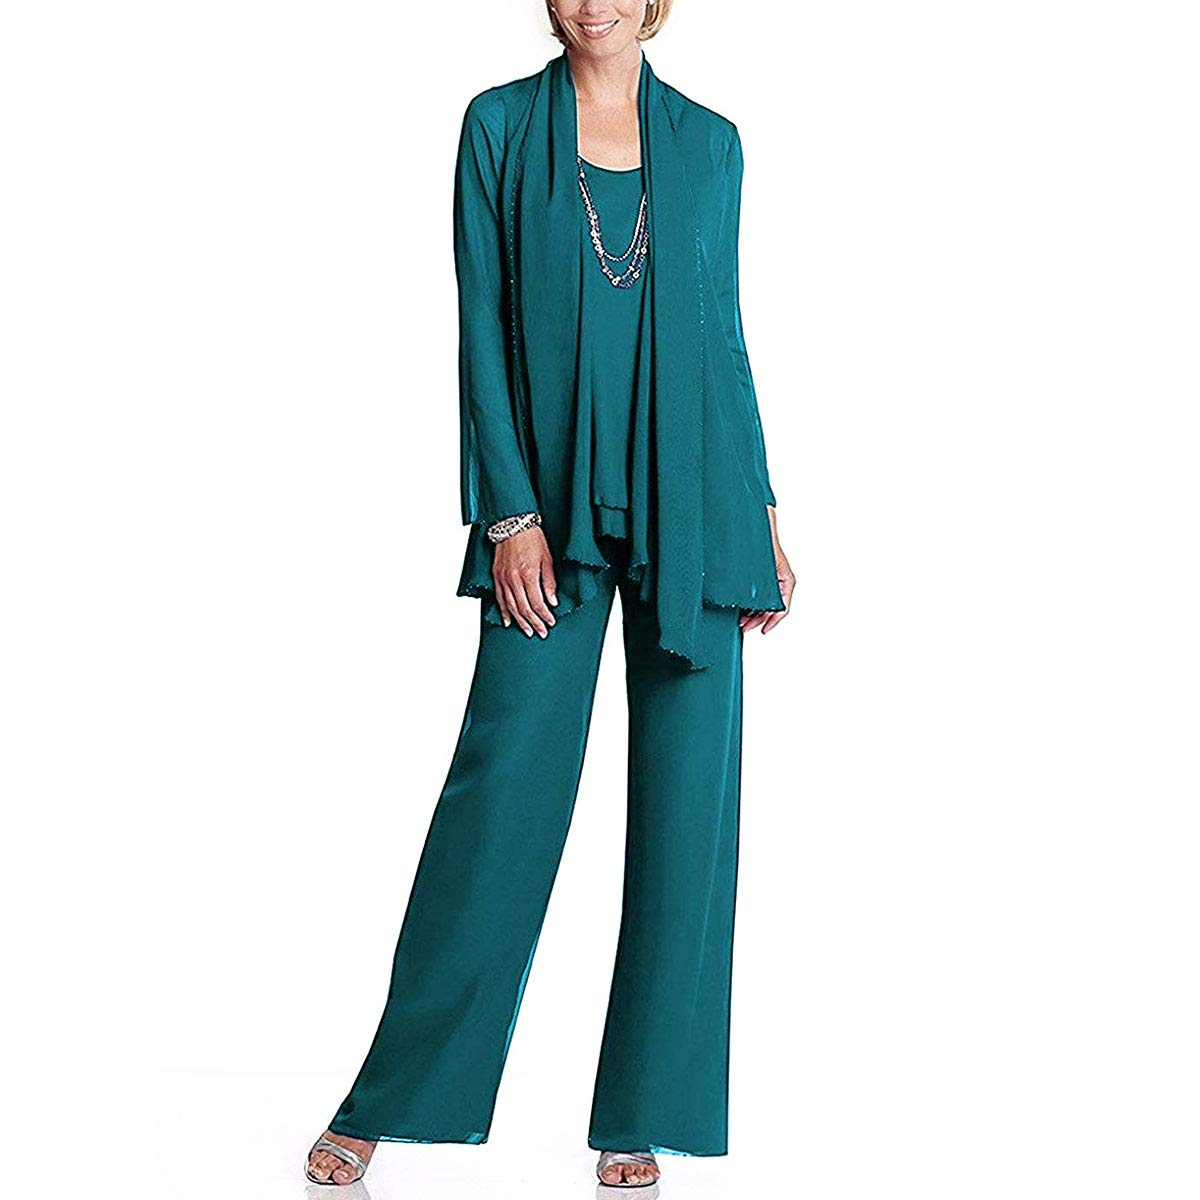 d1f035fdef7 Amazon.com  Landress Grandmother of Bride Beaded Outfit Pants Suit with  Jacket  Clothing